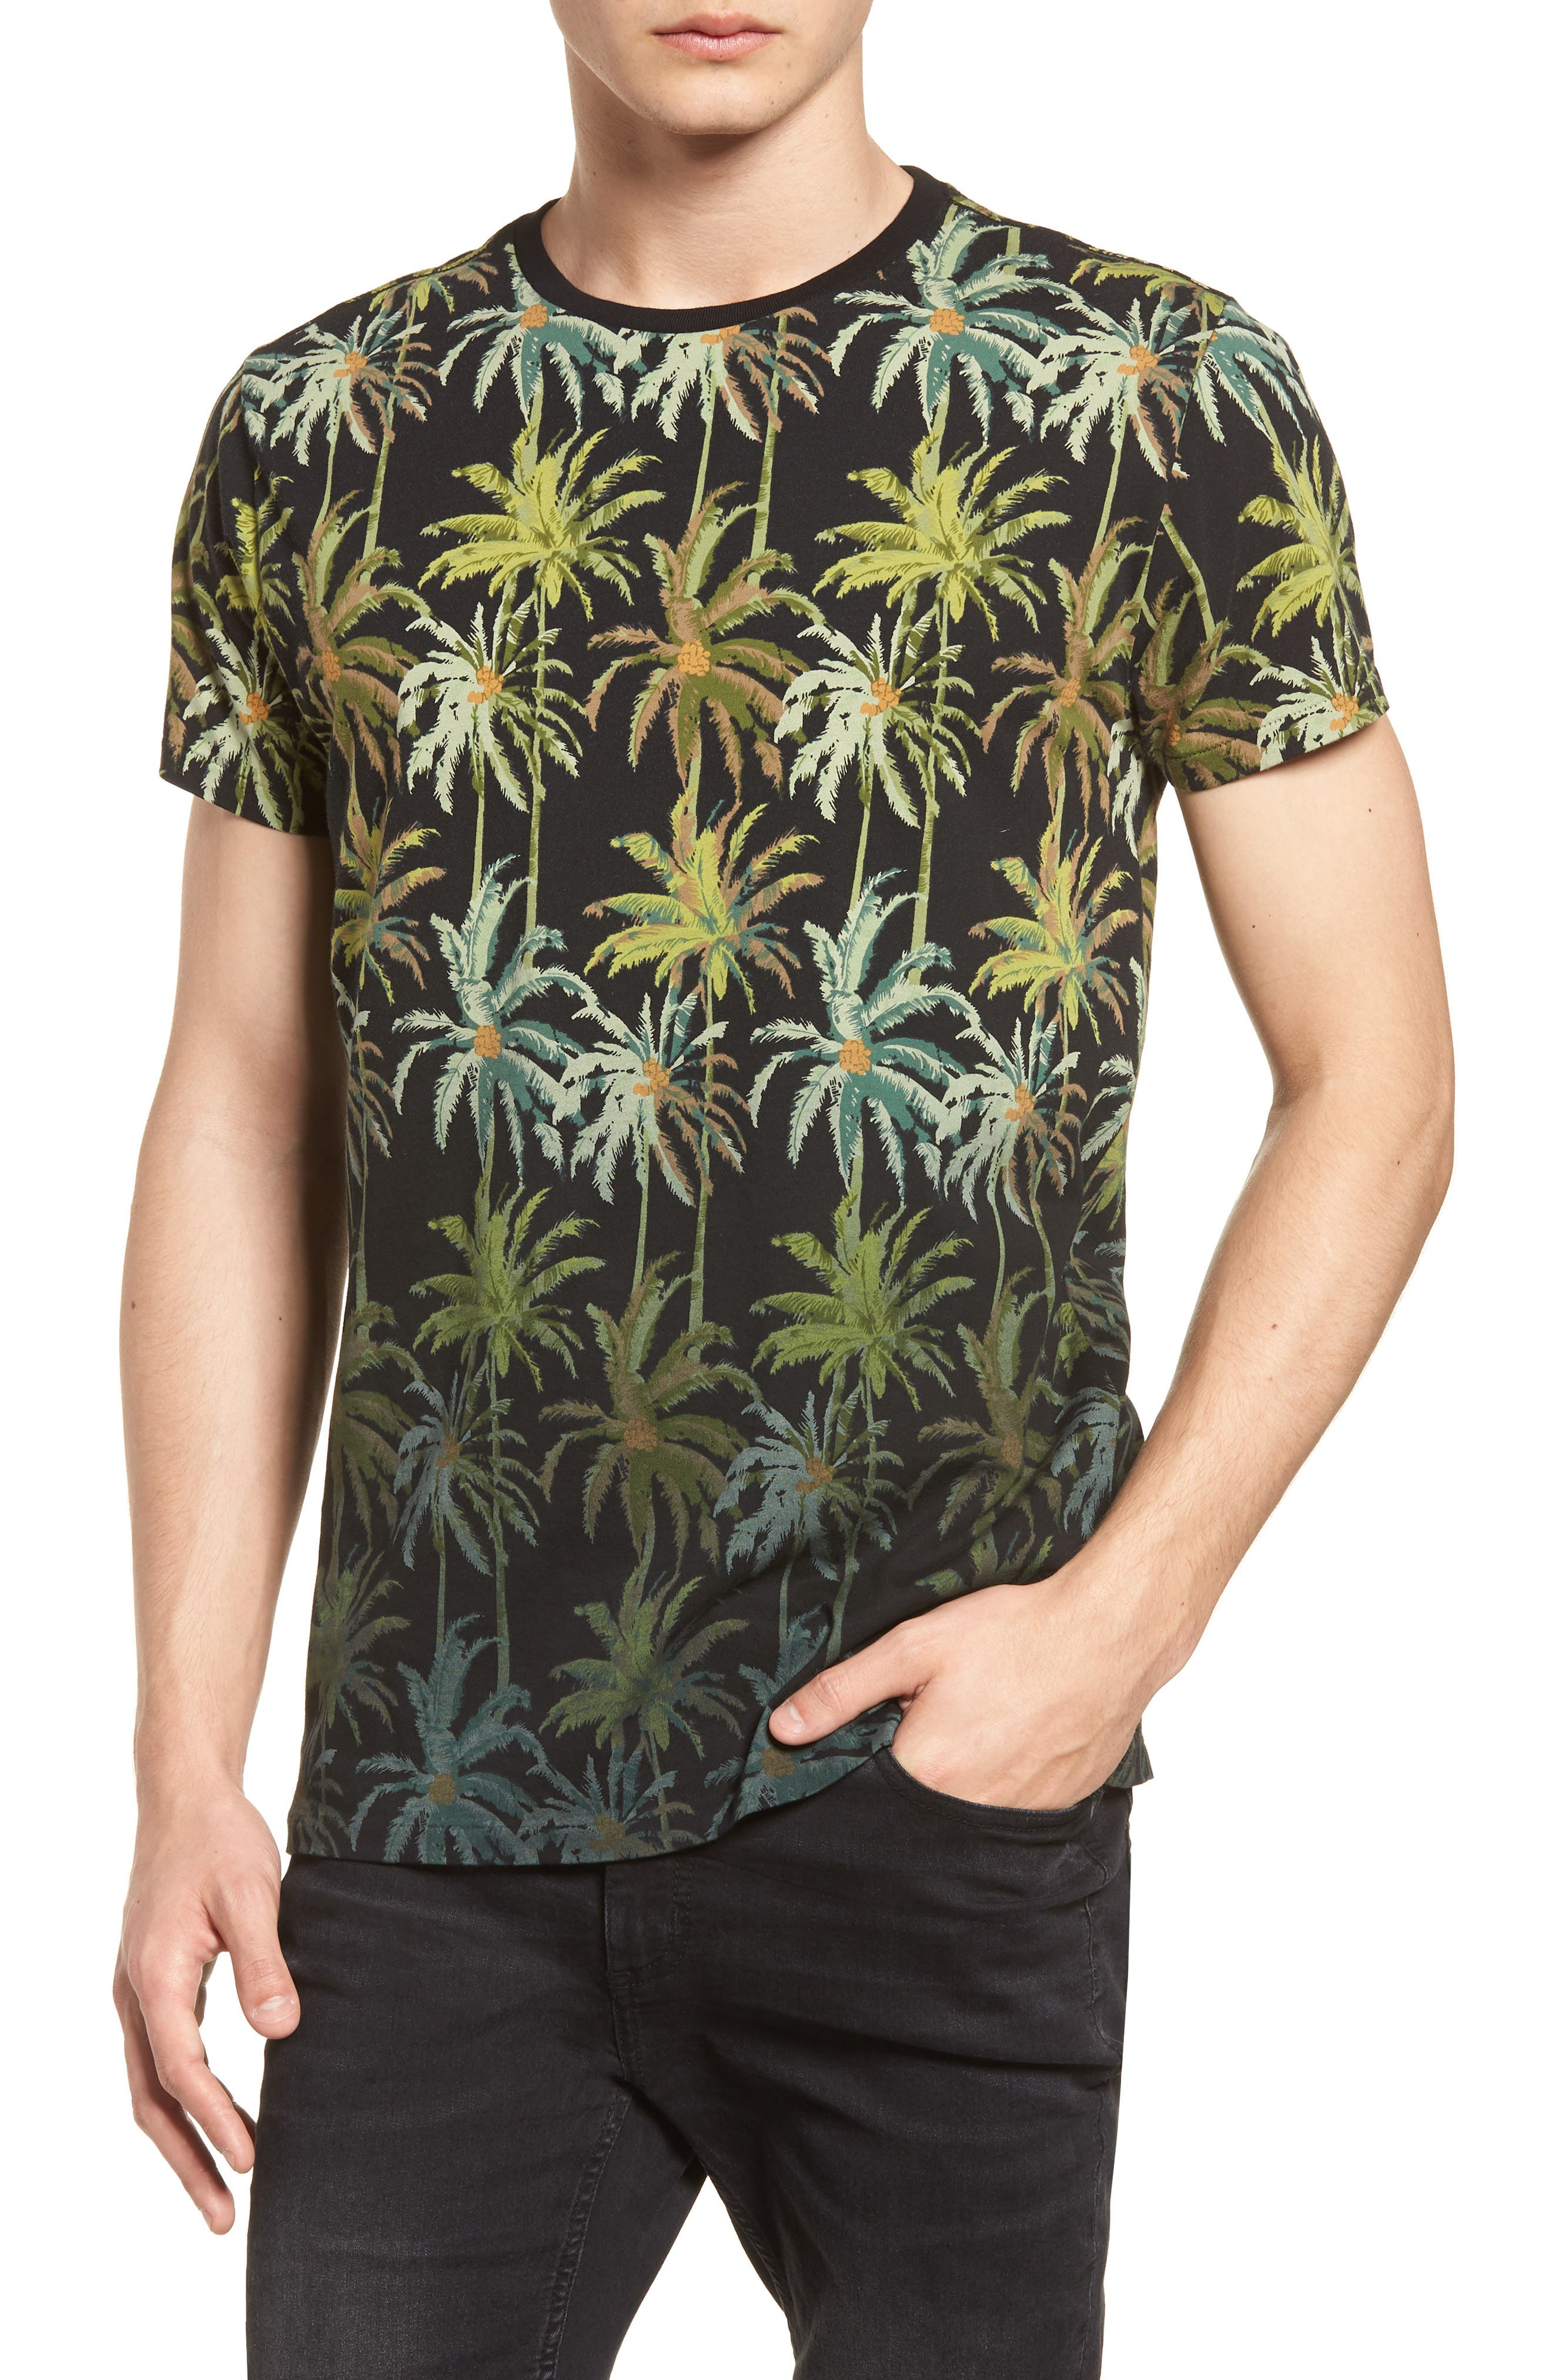 Scotch & Soda The Poolside Print T-Shirt